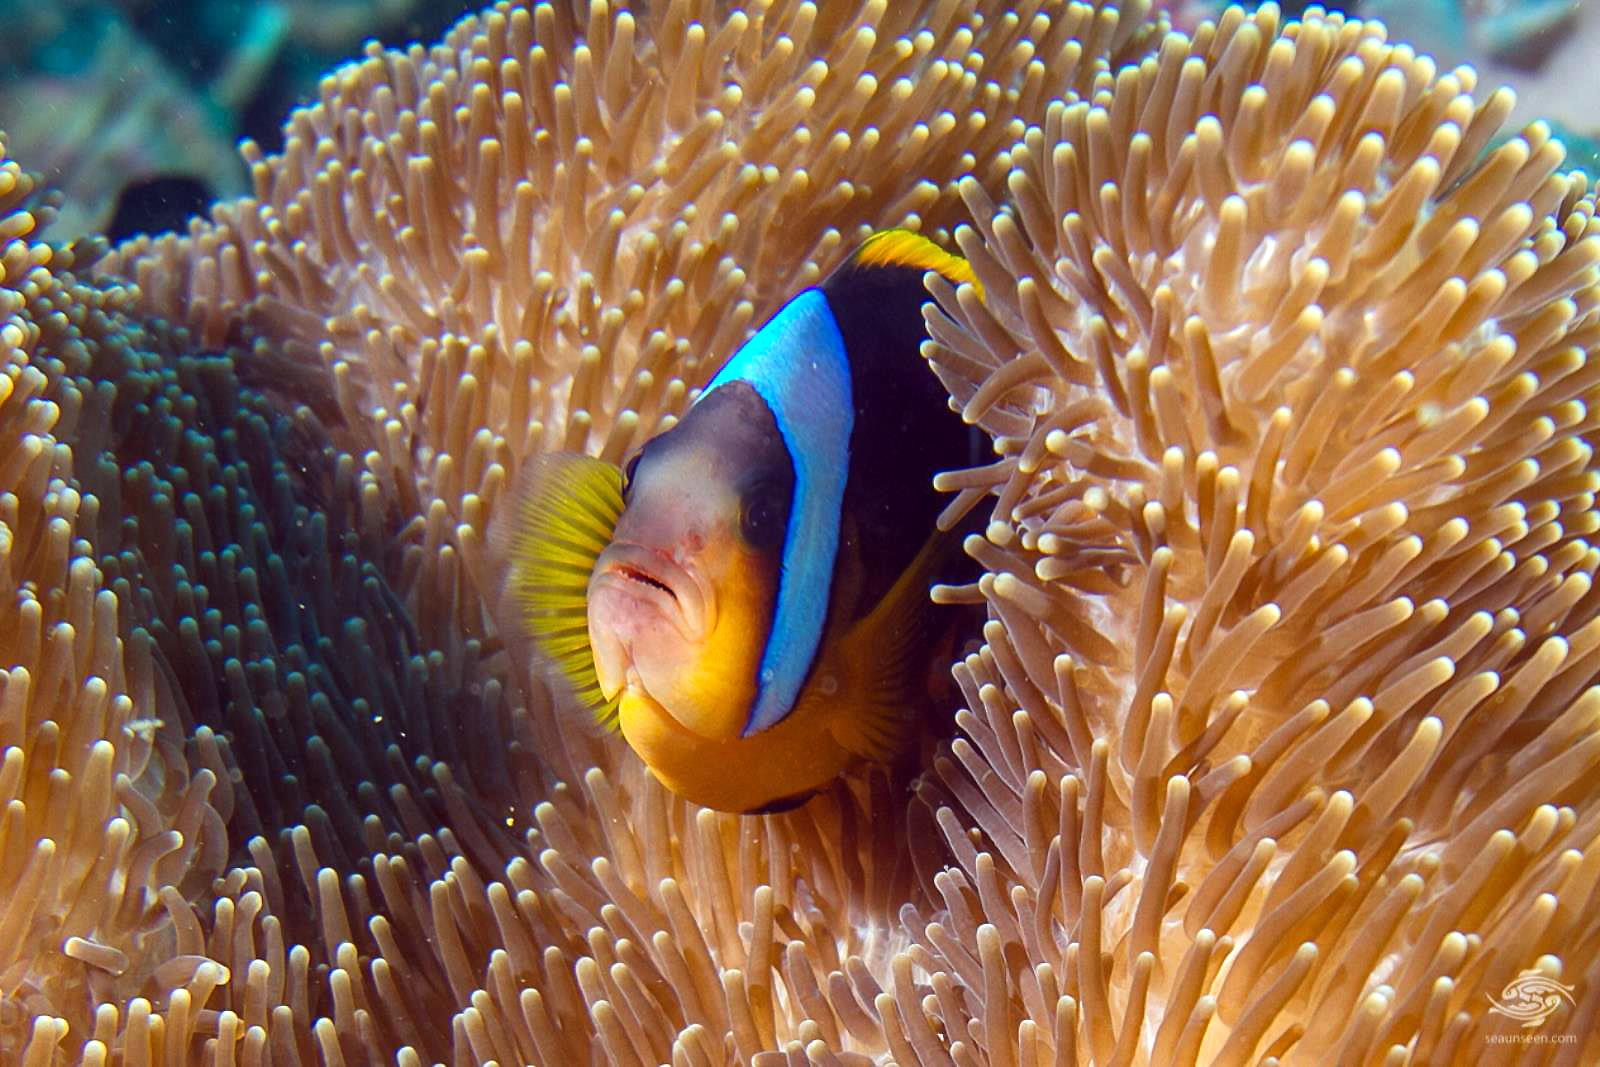 Allard 39 s clownfish facts and photographs seaunseen for Clown fish habitat